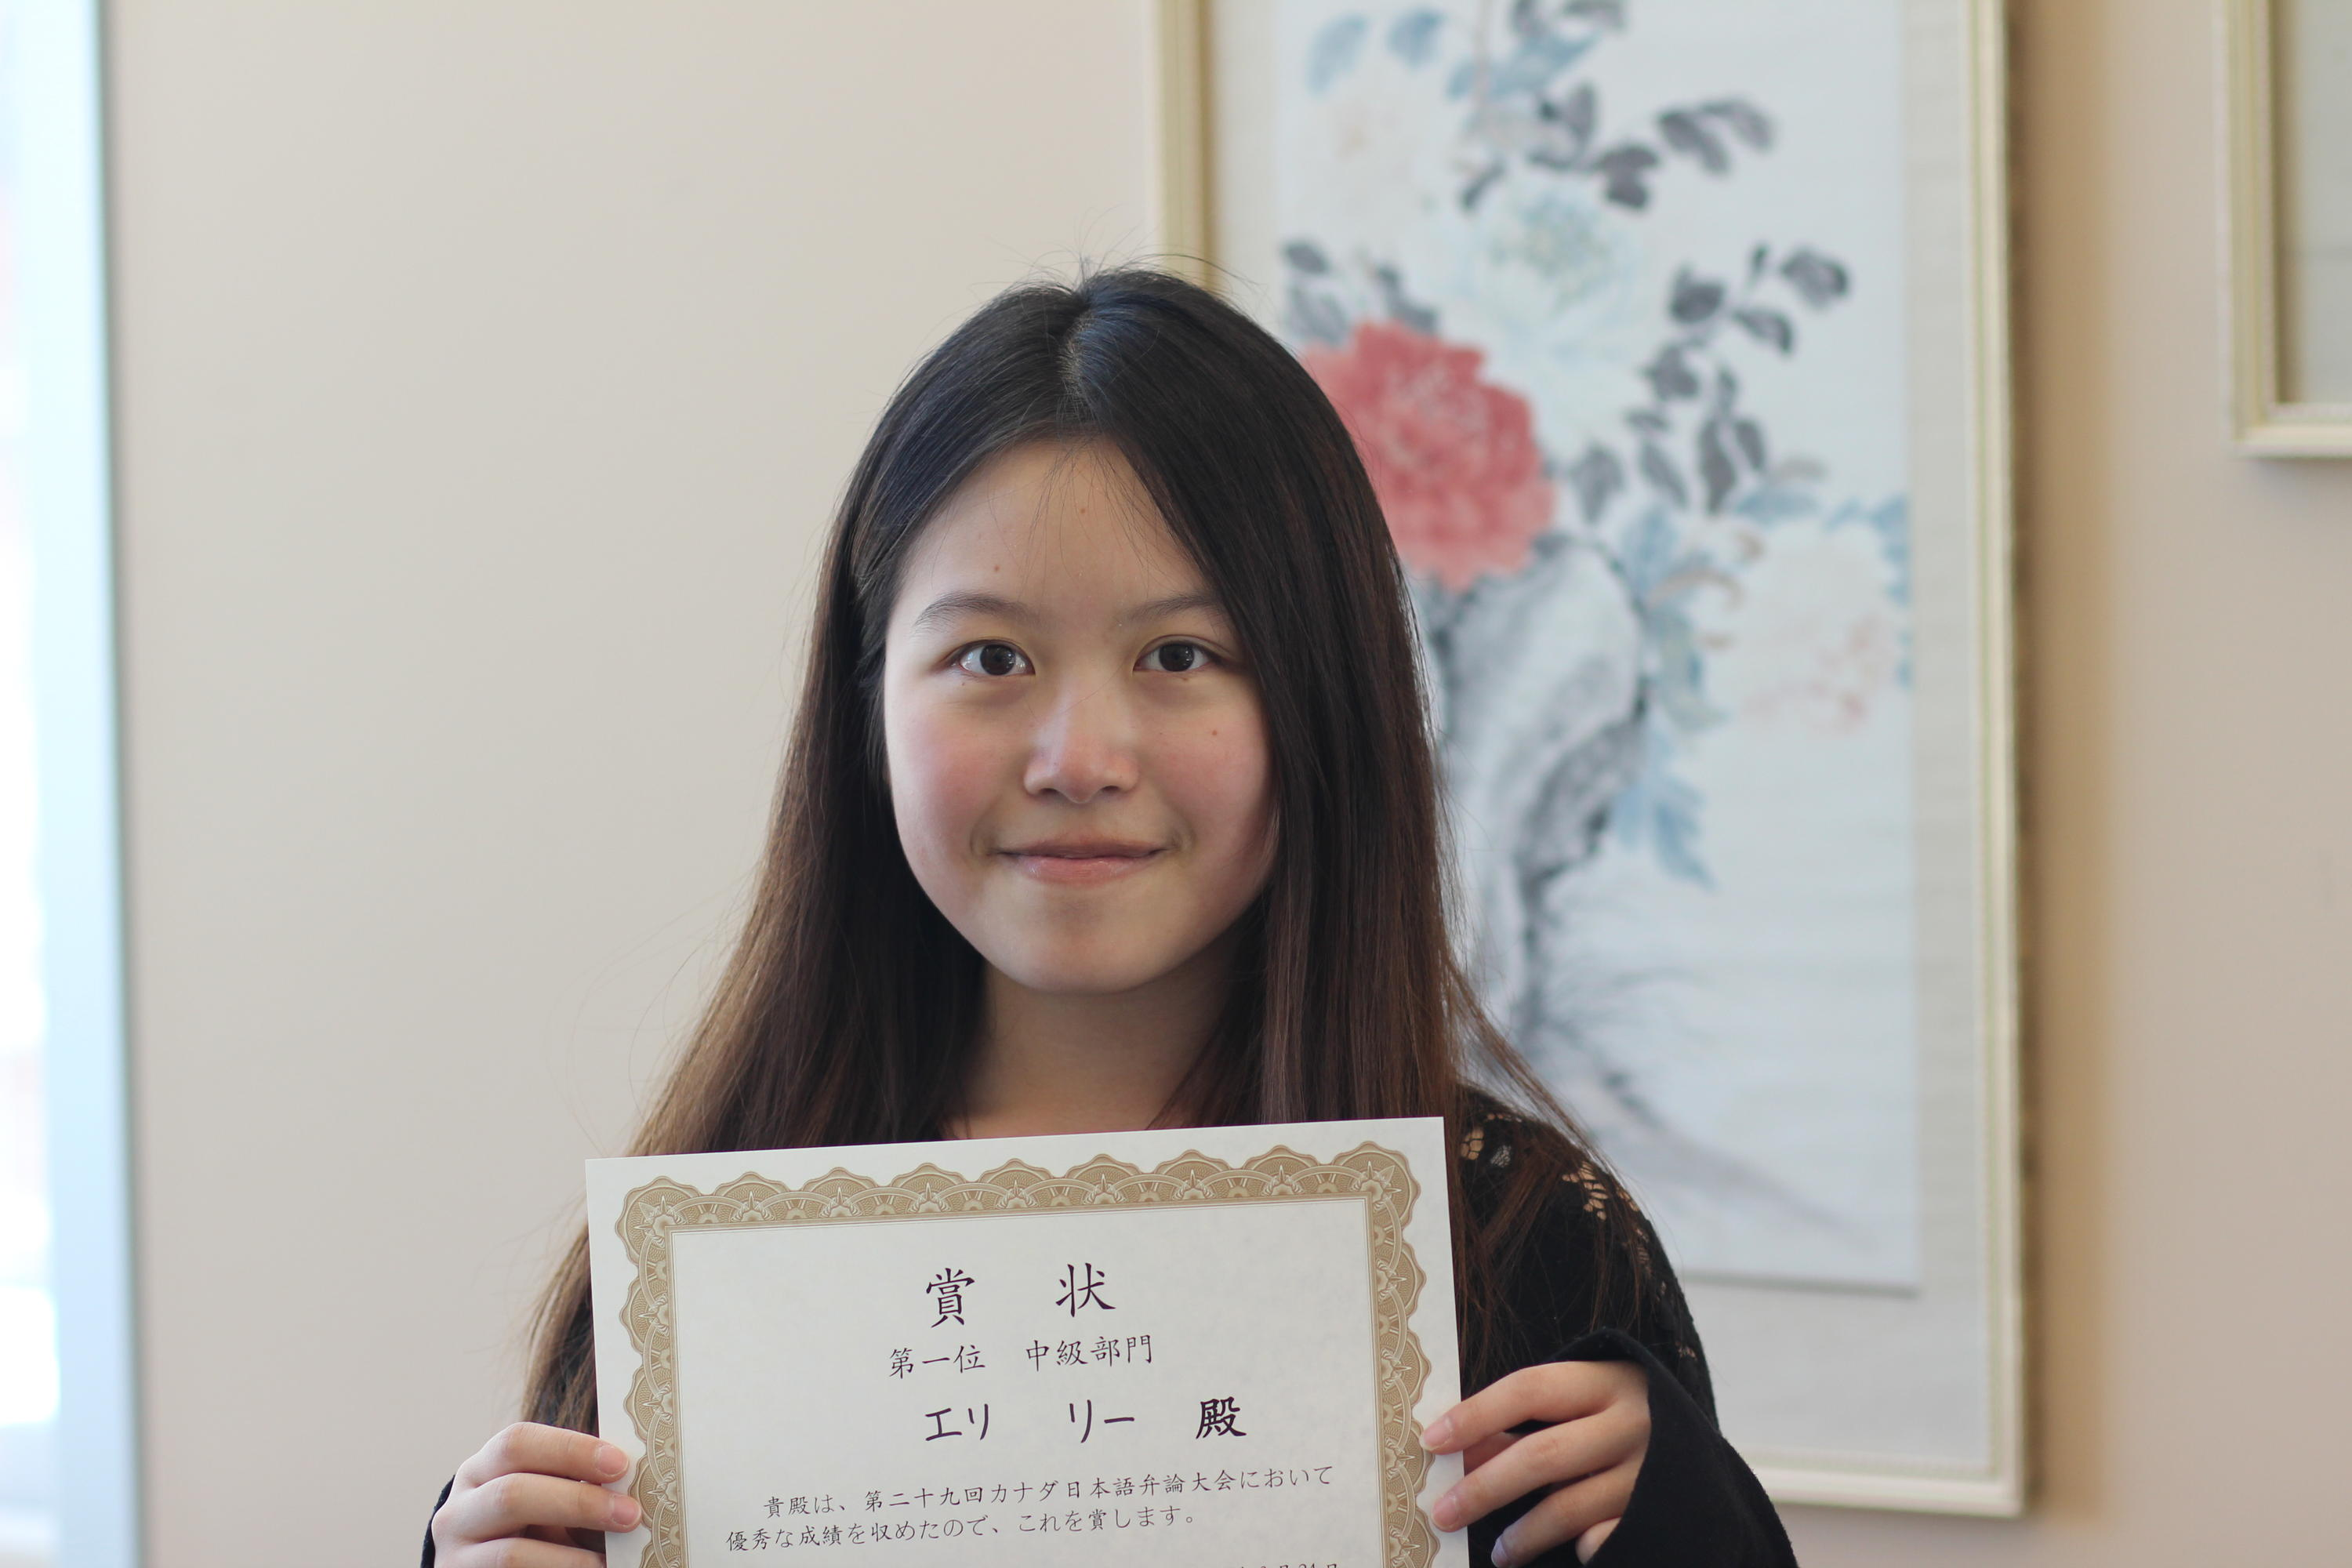 Photo of Elli Li holding certificate